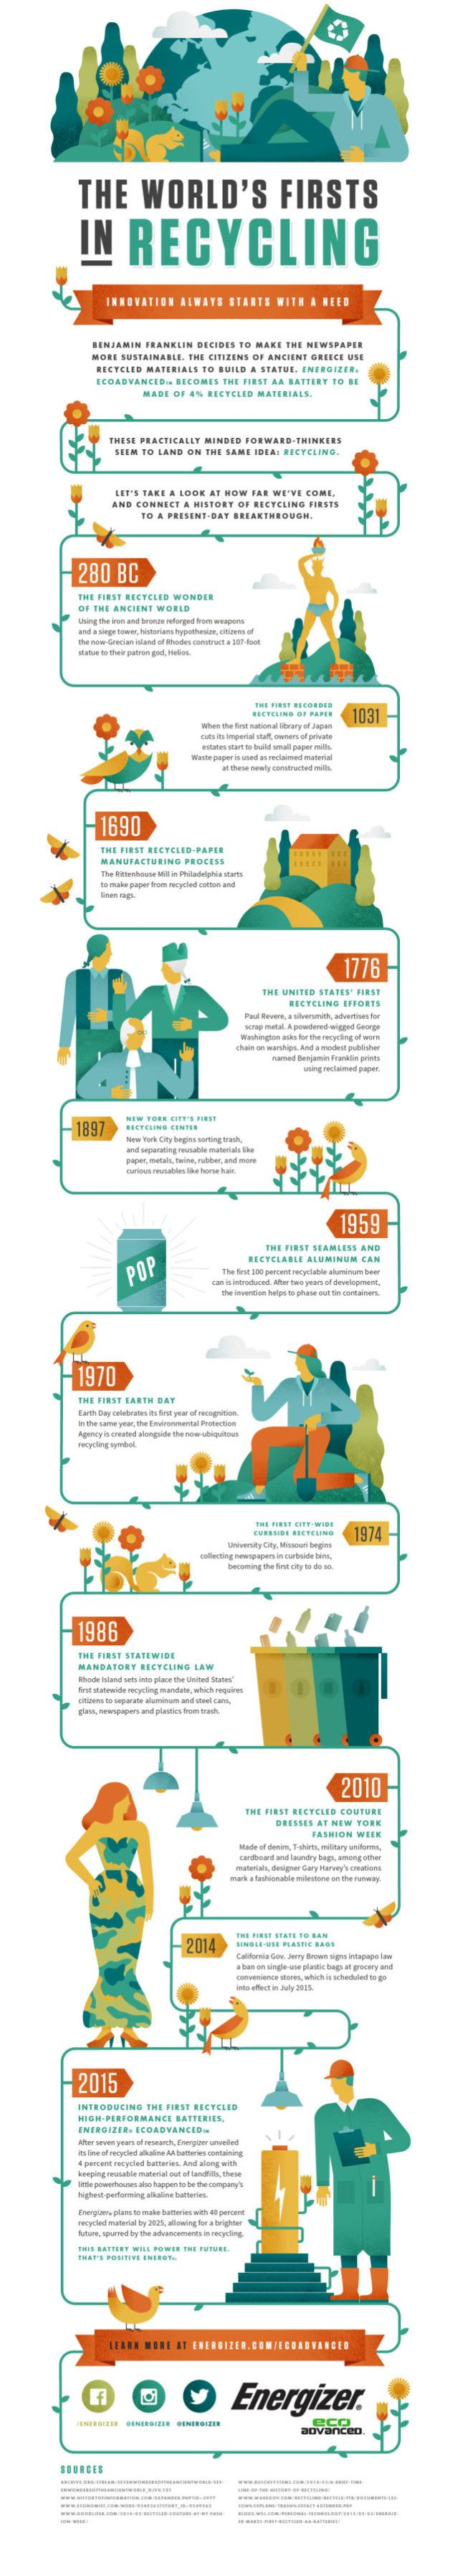 The World's Firsts in Recycling Infographic